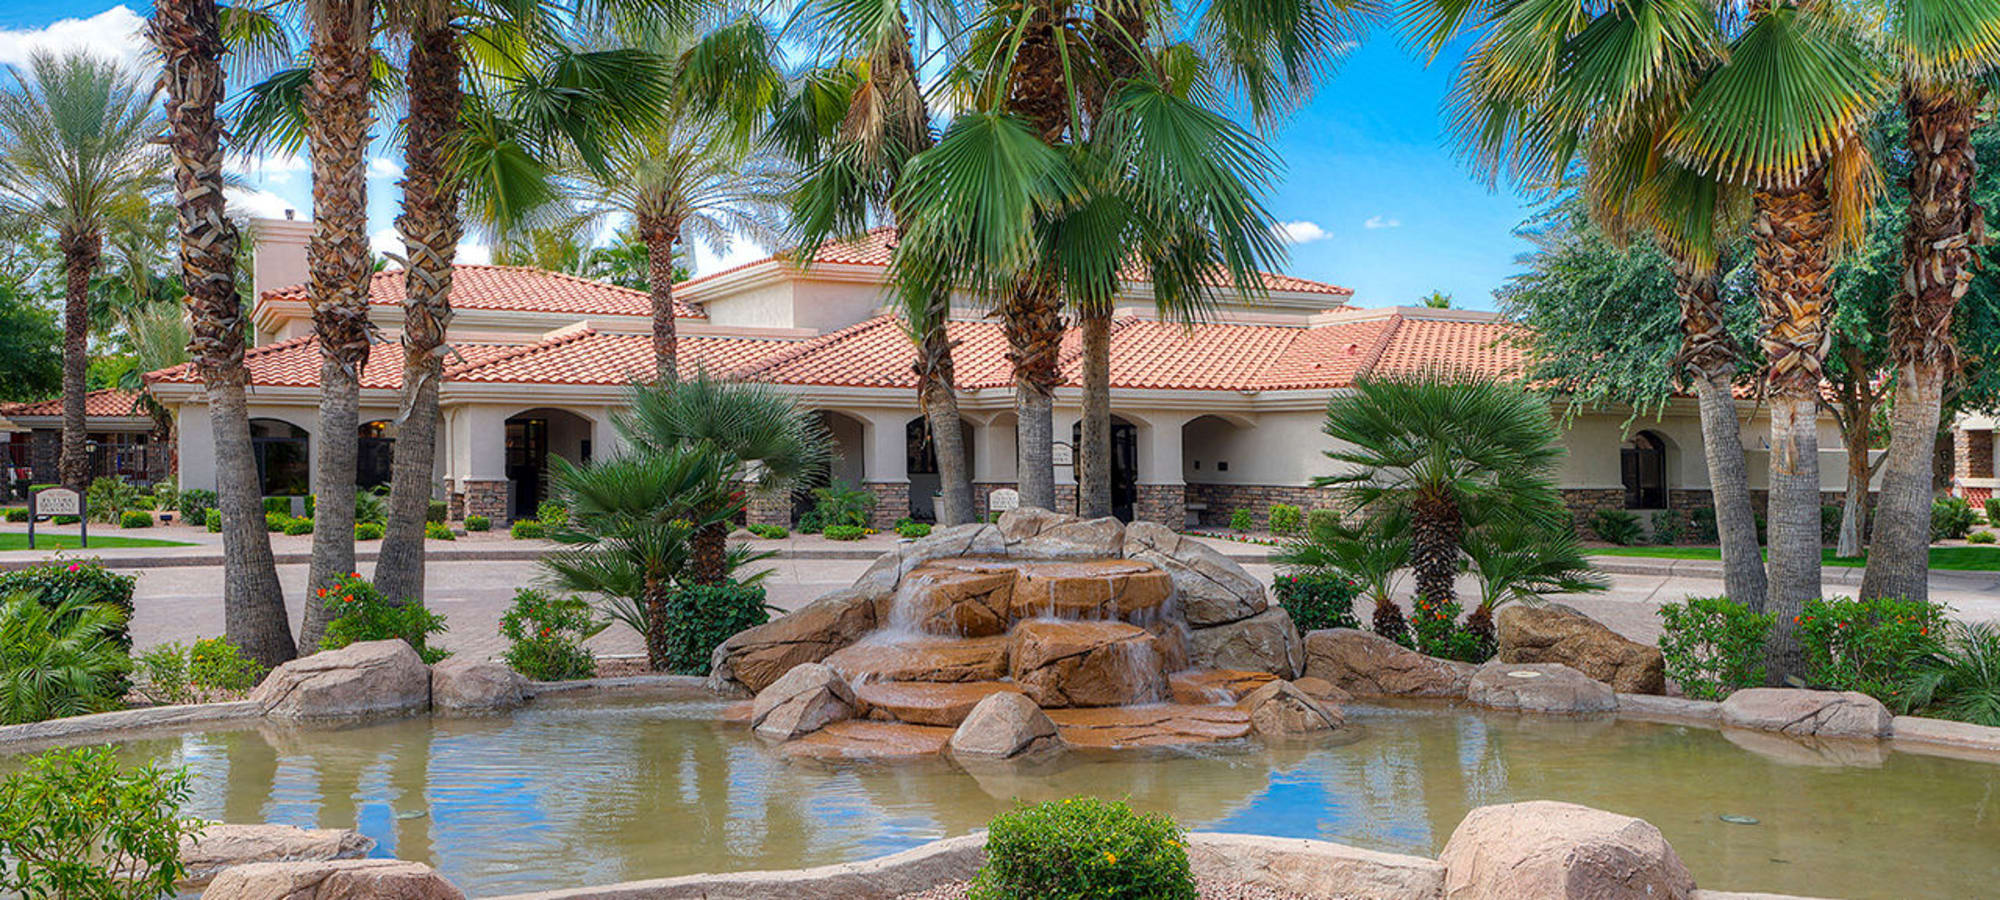 One of several gorgeous water features around the community at San Palmilla in Tempe, Arizona